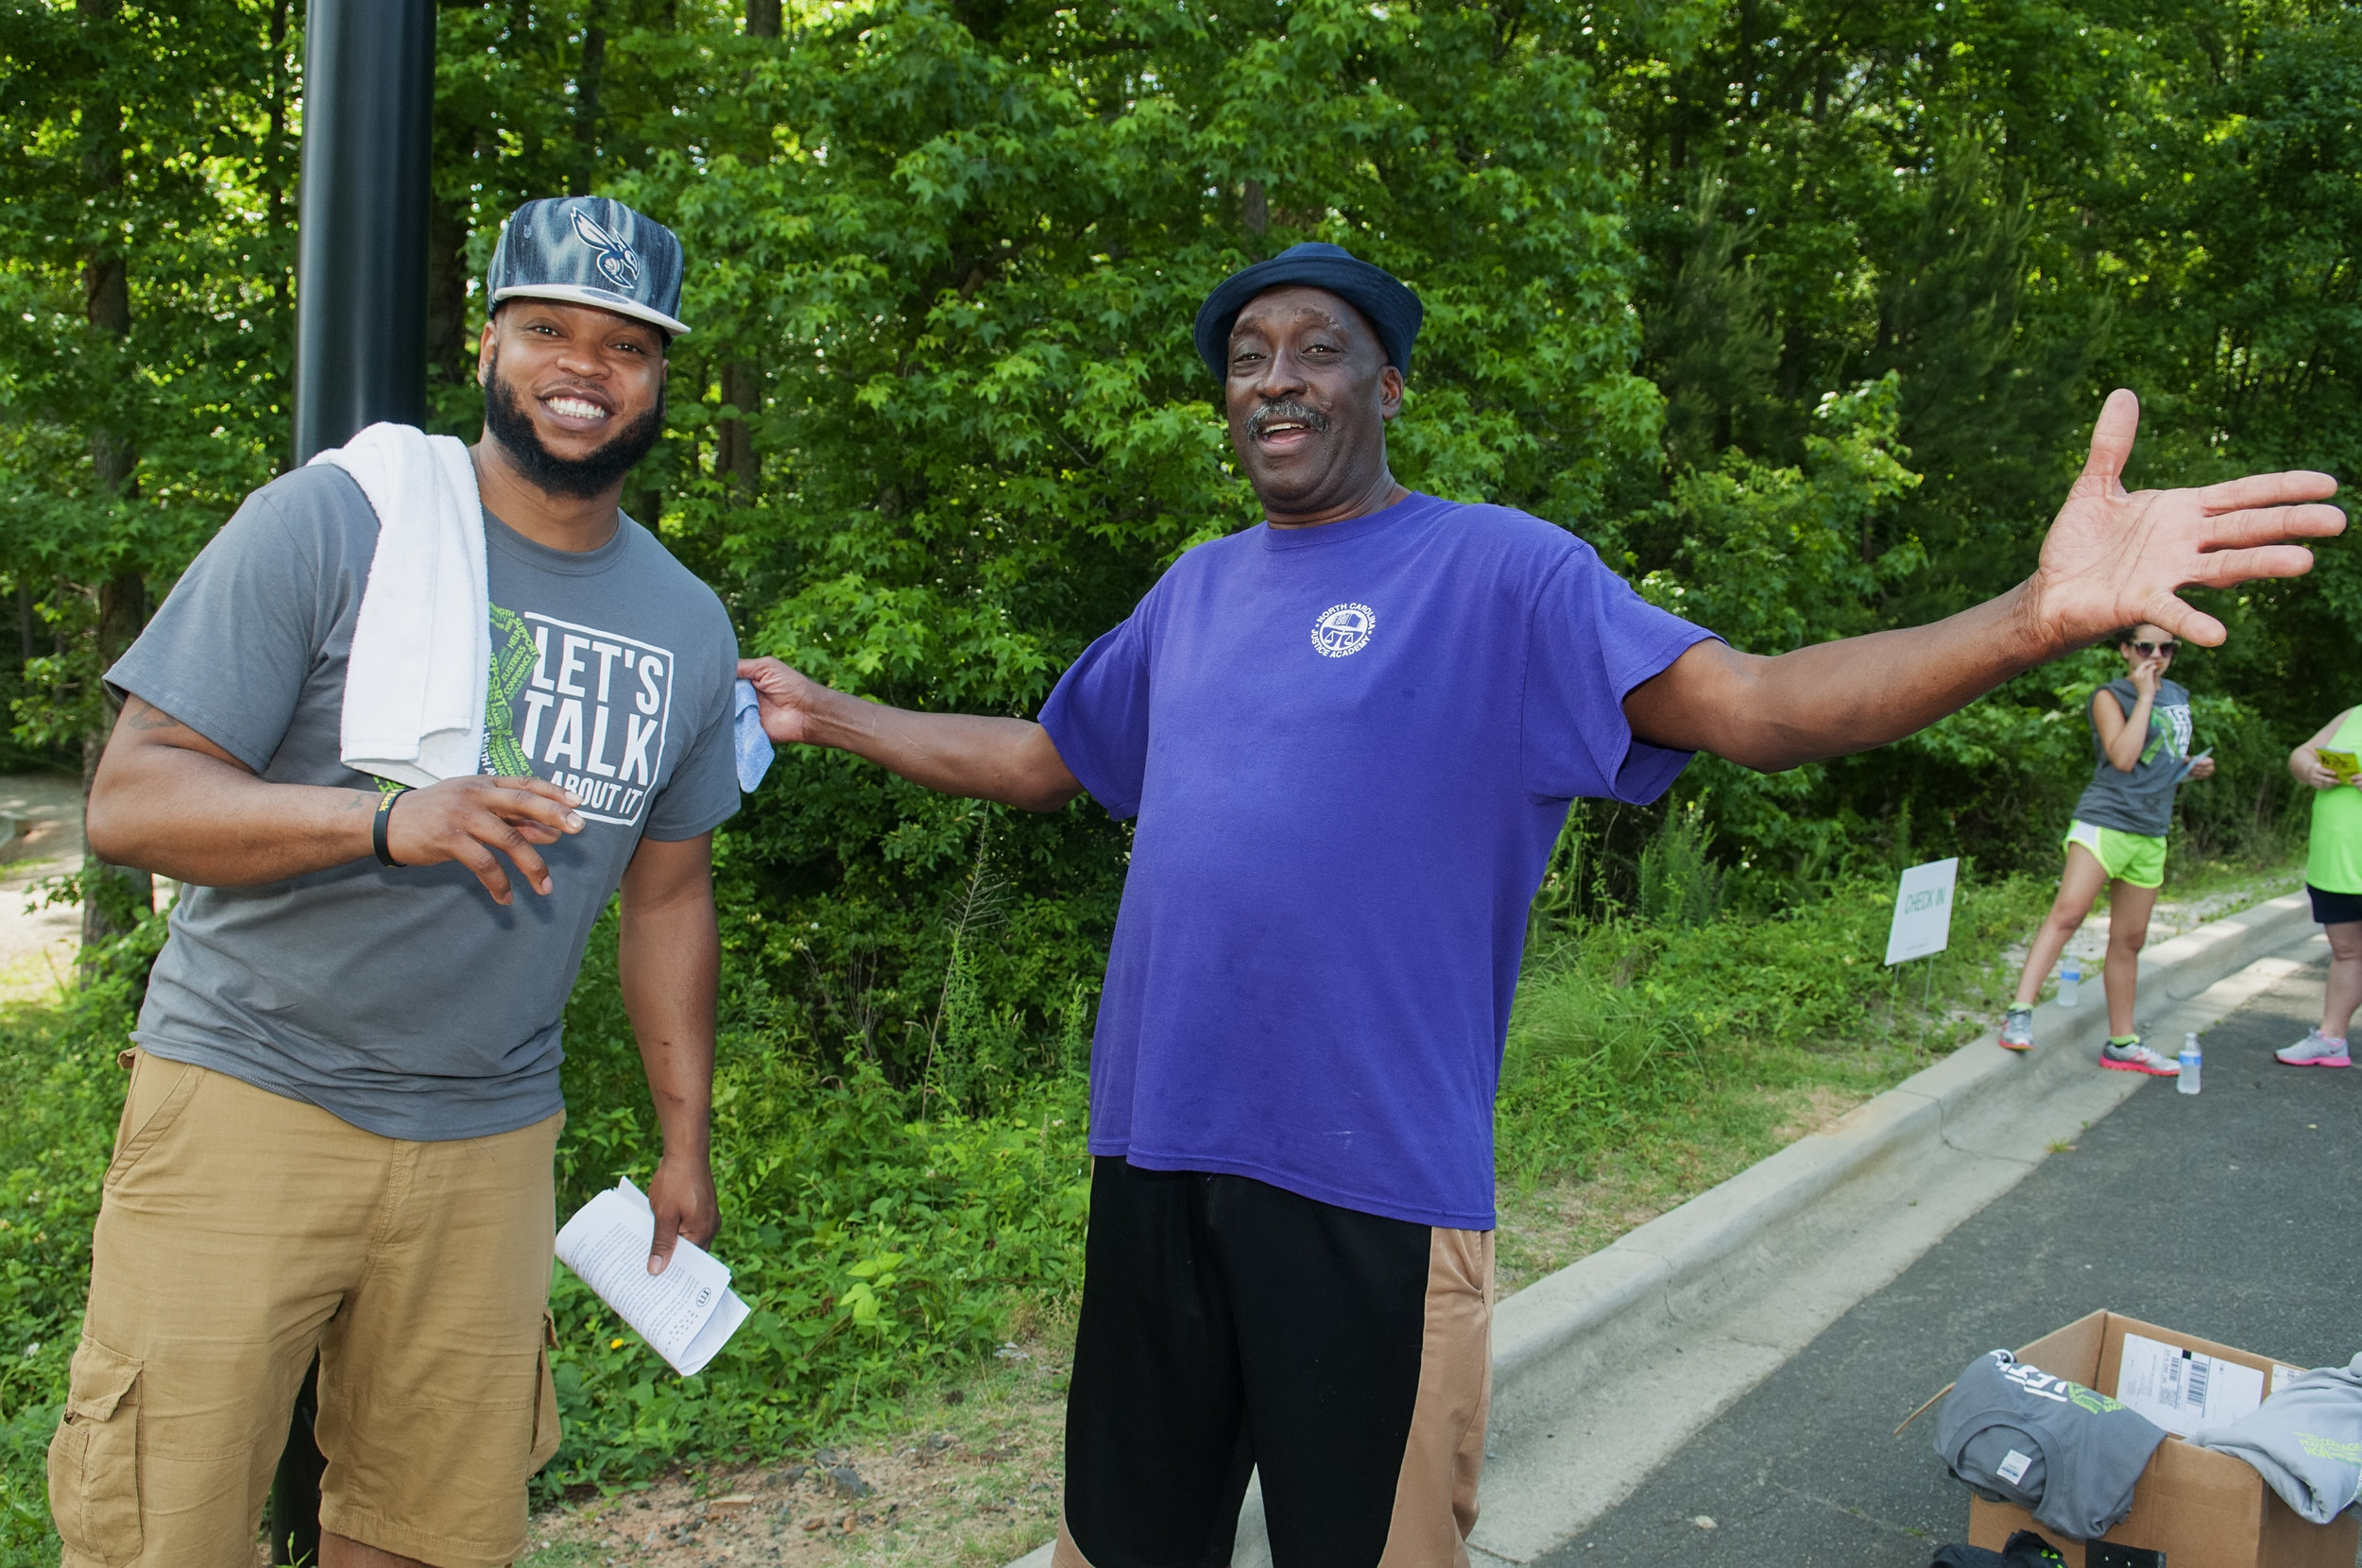 2nd Annual Let's Talk About It Mental Health Awareness Walk @ Park Rd Park 5-20-17 by Jon Strayhorn 085.jpg